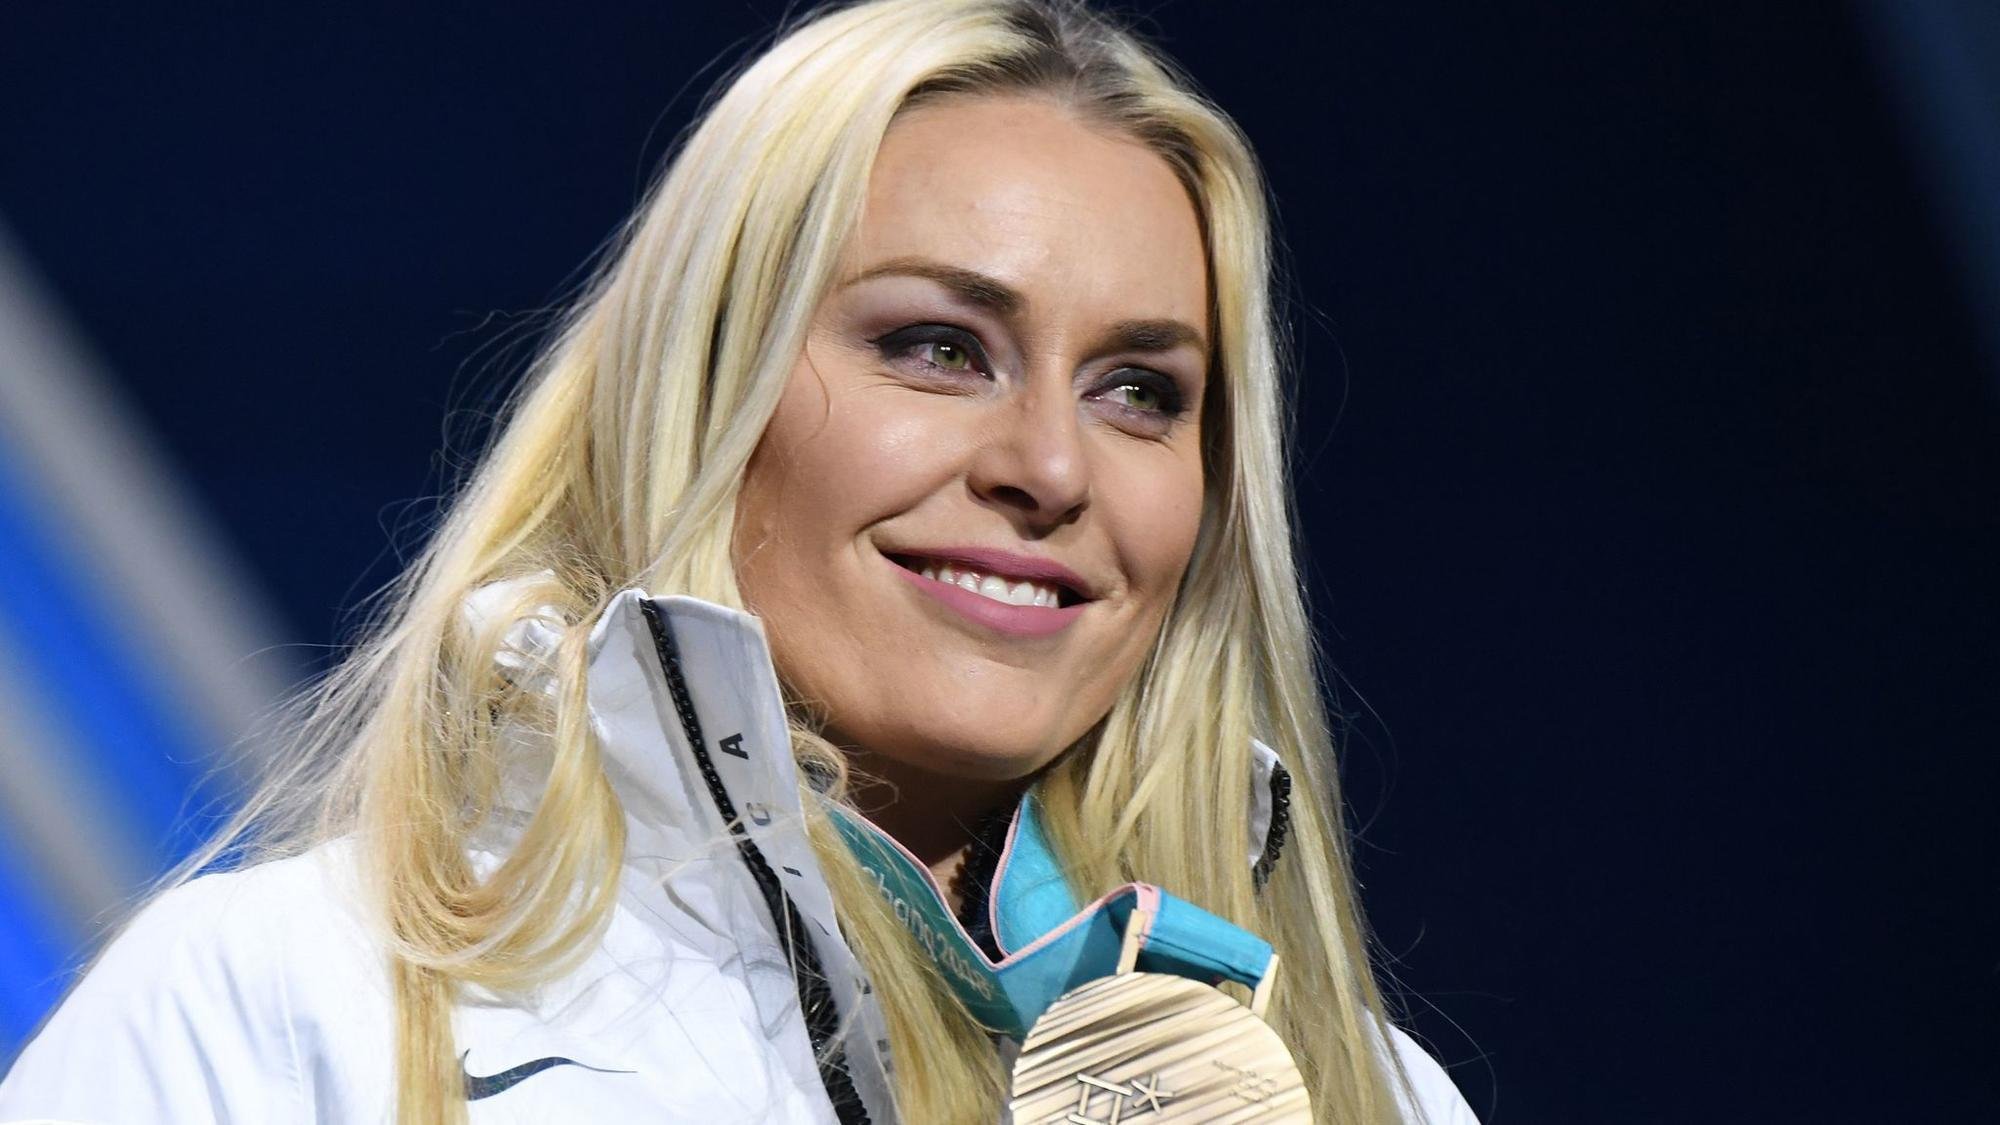 olympic-bronze-doesn-t-begin-to-tell-the-story-of-lindsey-vonn-the-greatest-female-ski-racer-of-all-time-chicago-tribune